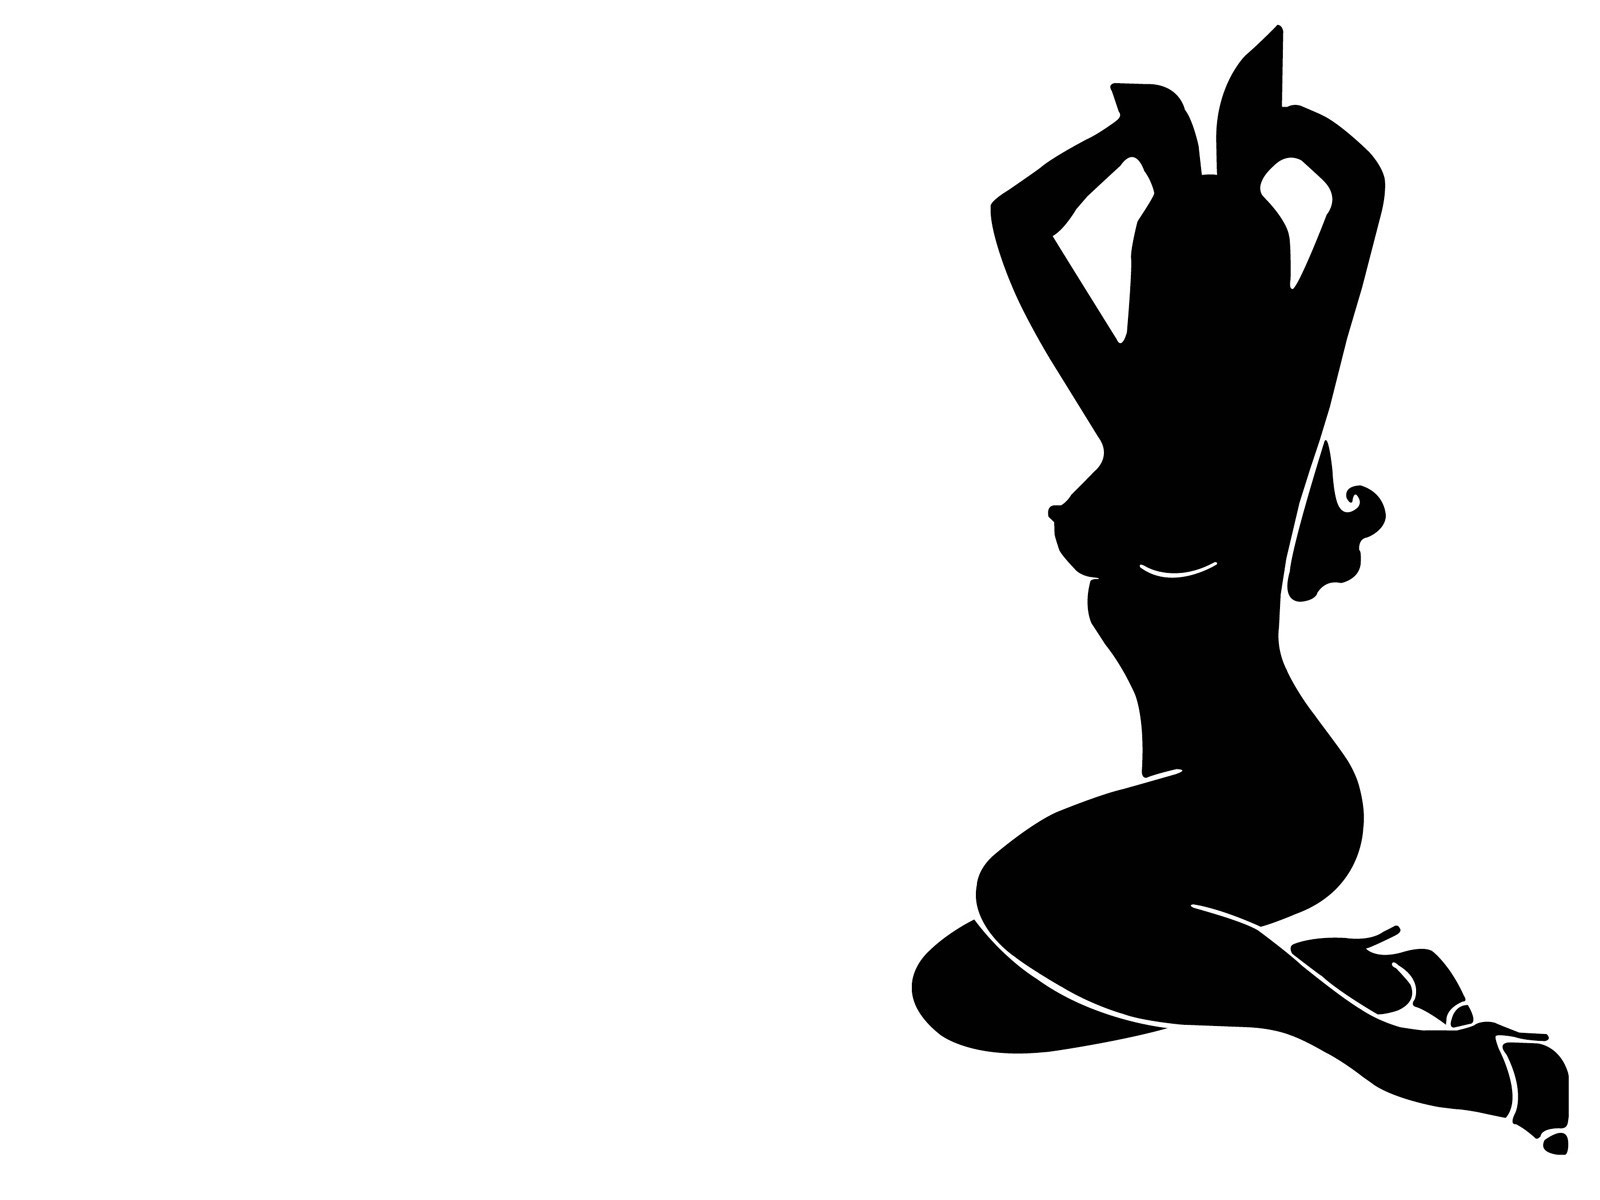 wallpapers playboy: the mansion